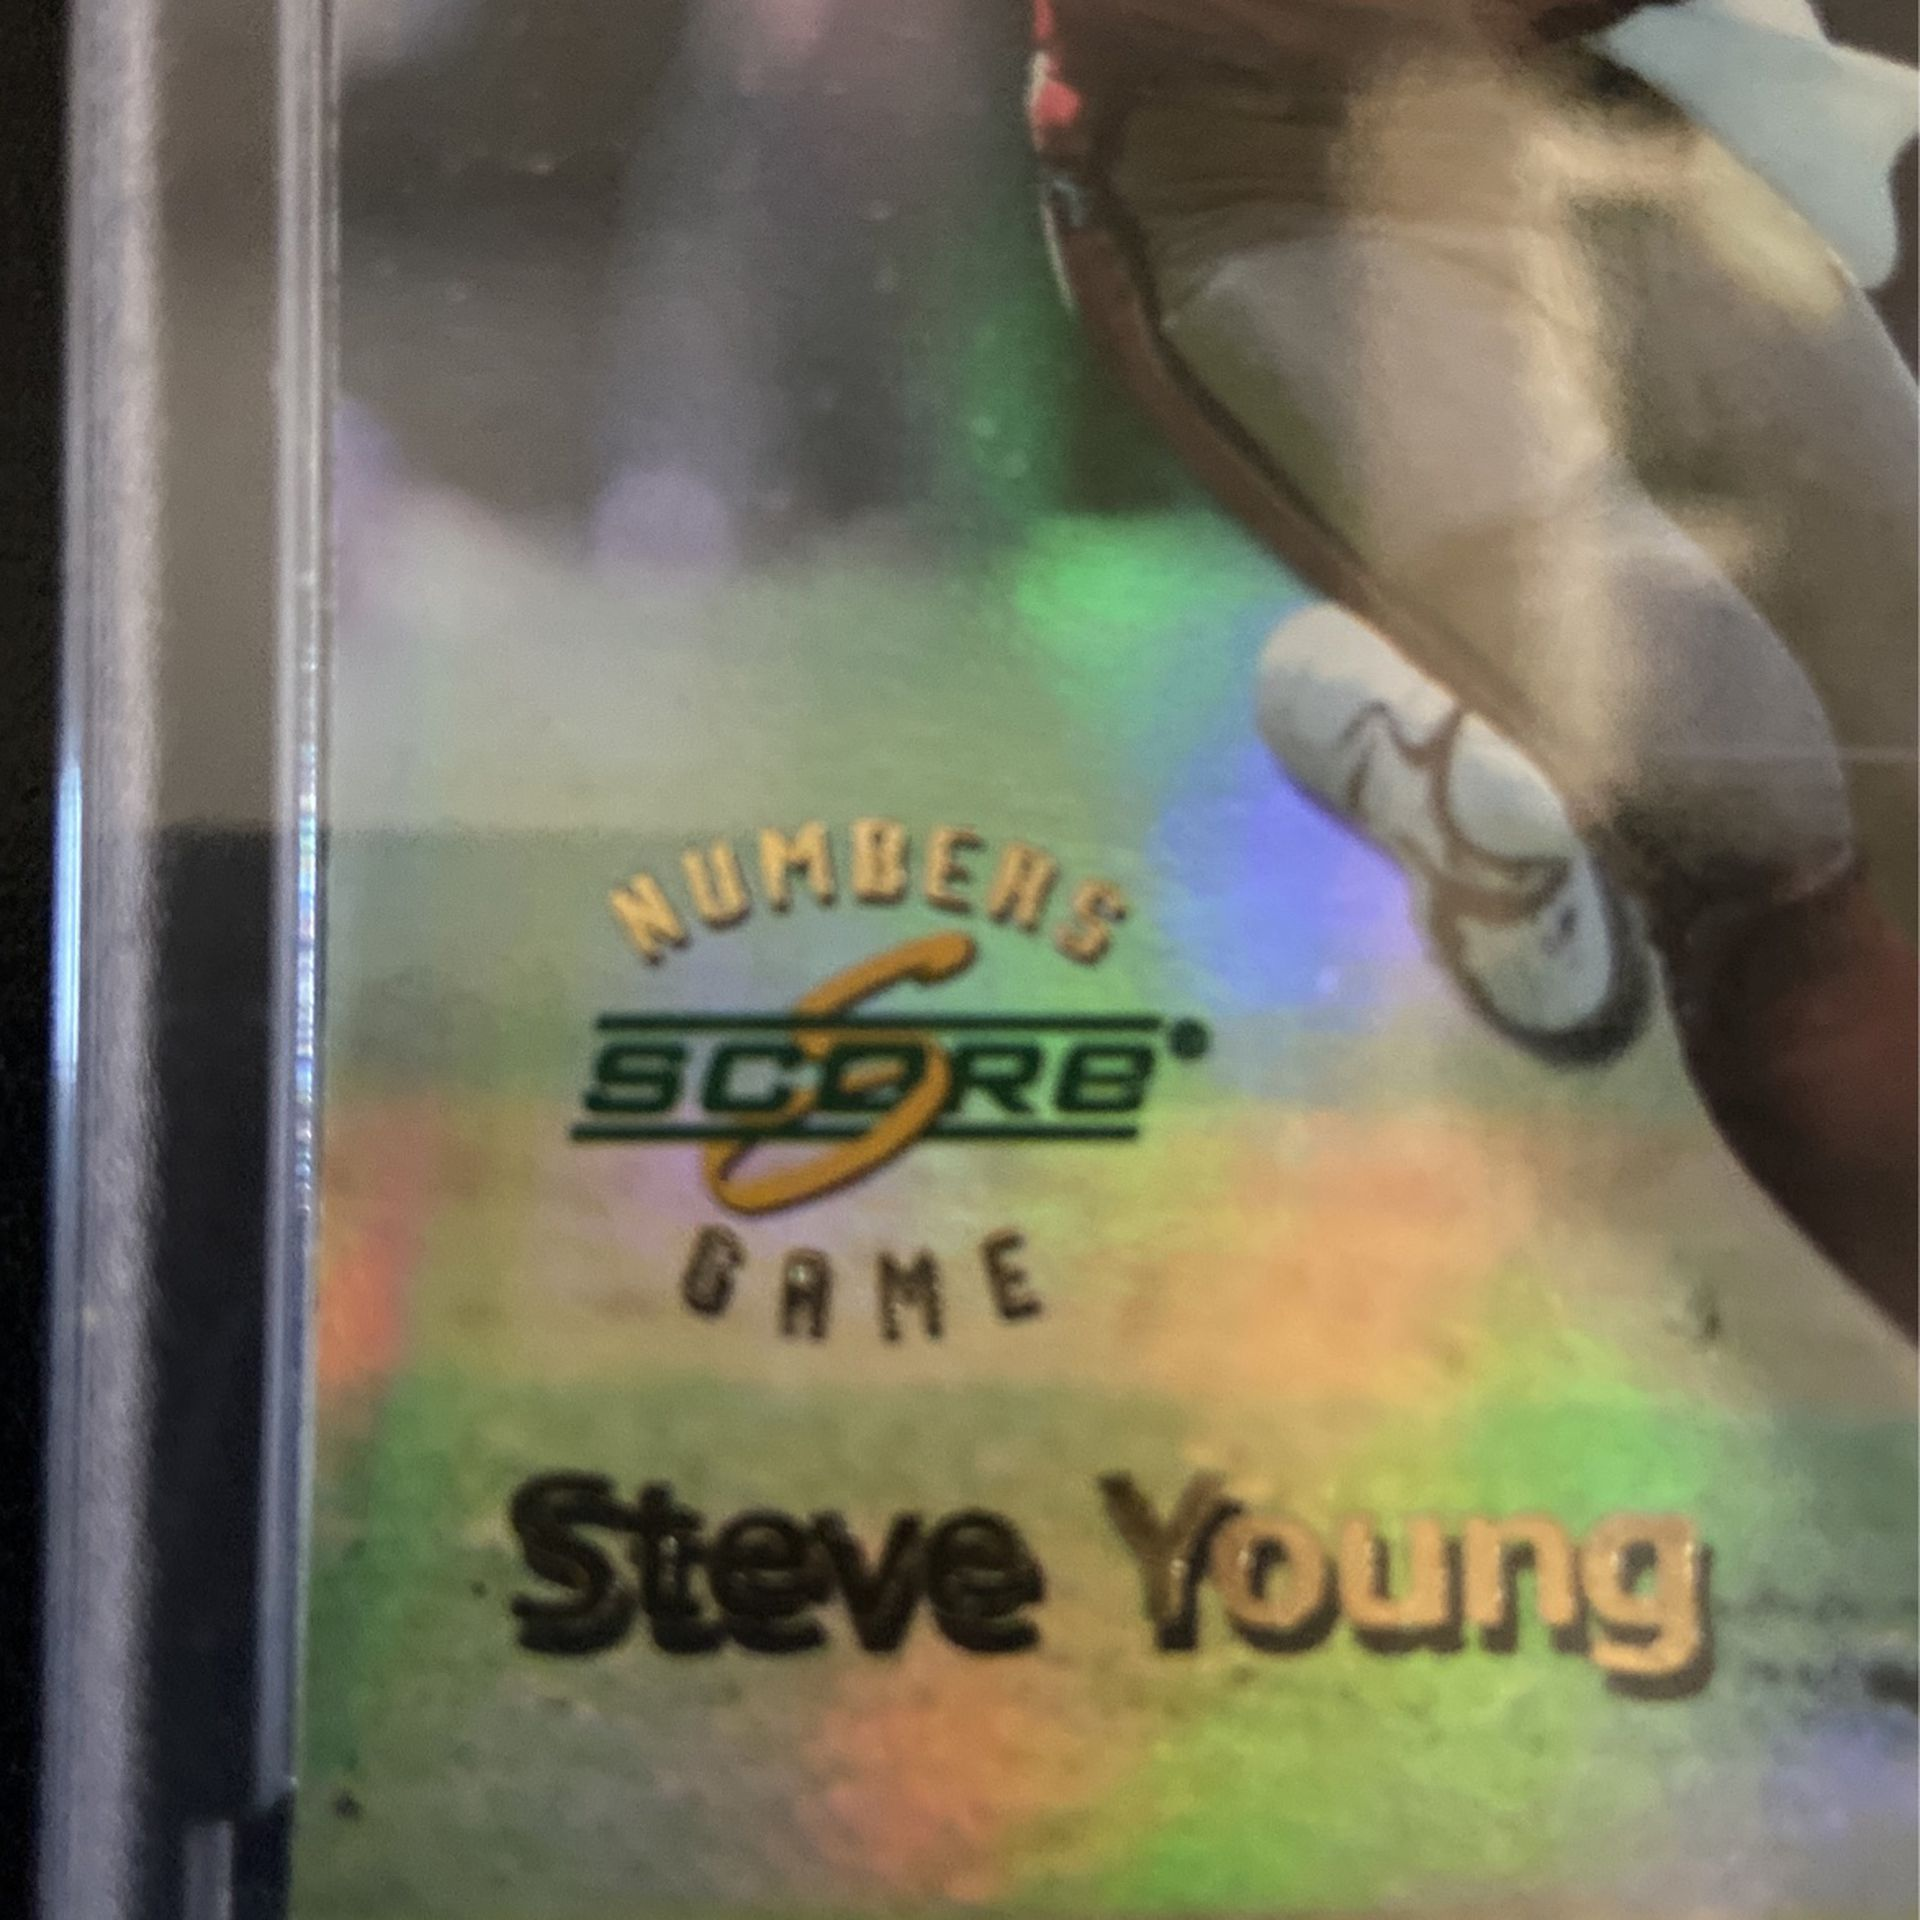 49ers Steve Young Rare Score Passing Yards Insert Card #/4,170 🔥